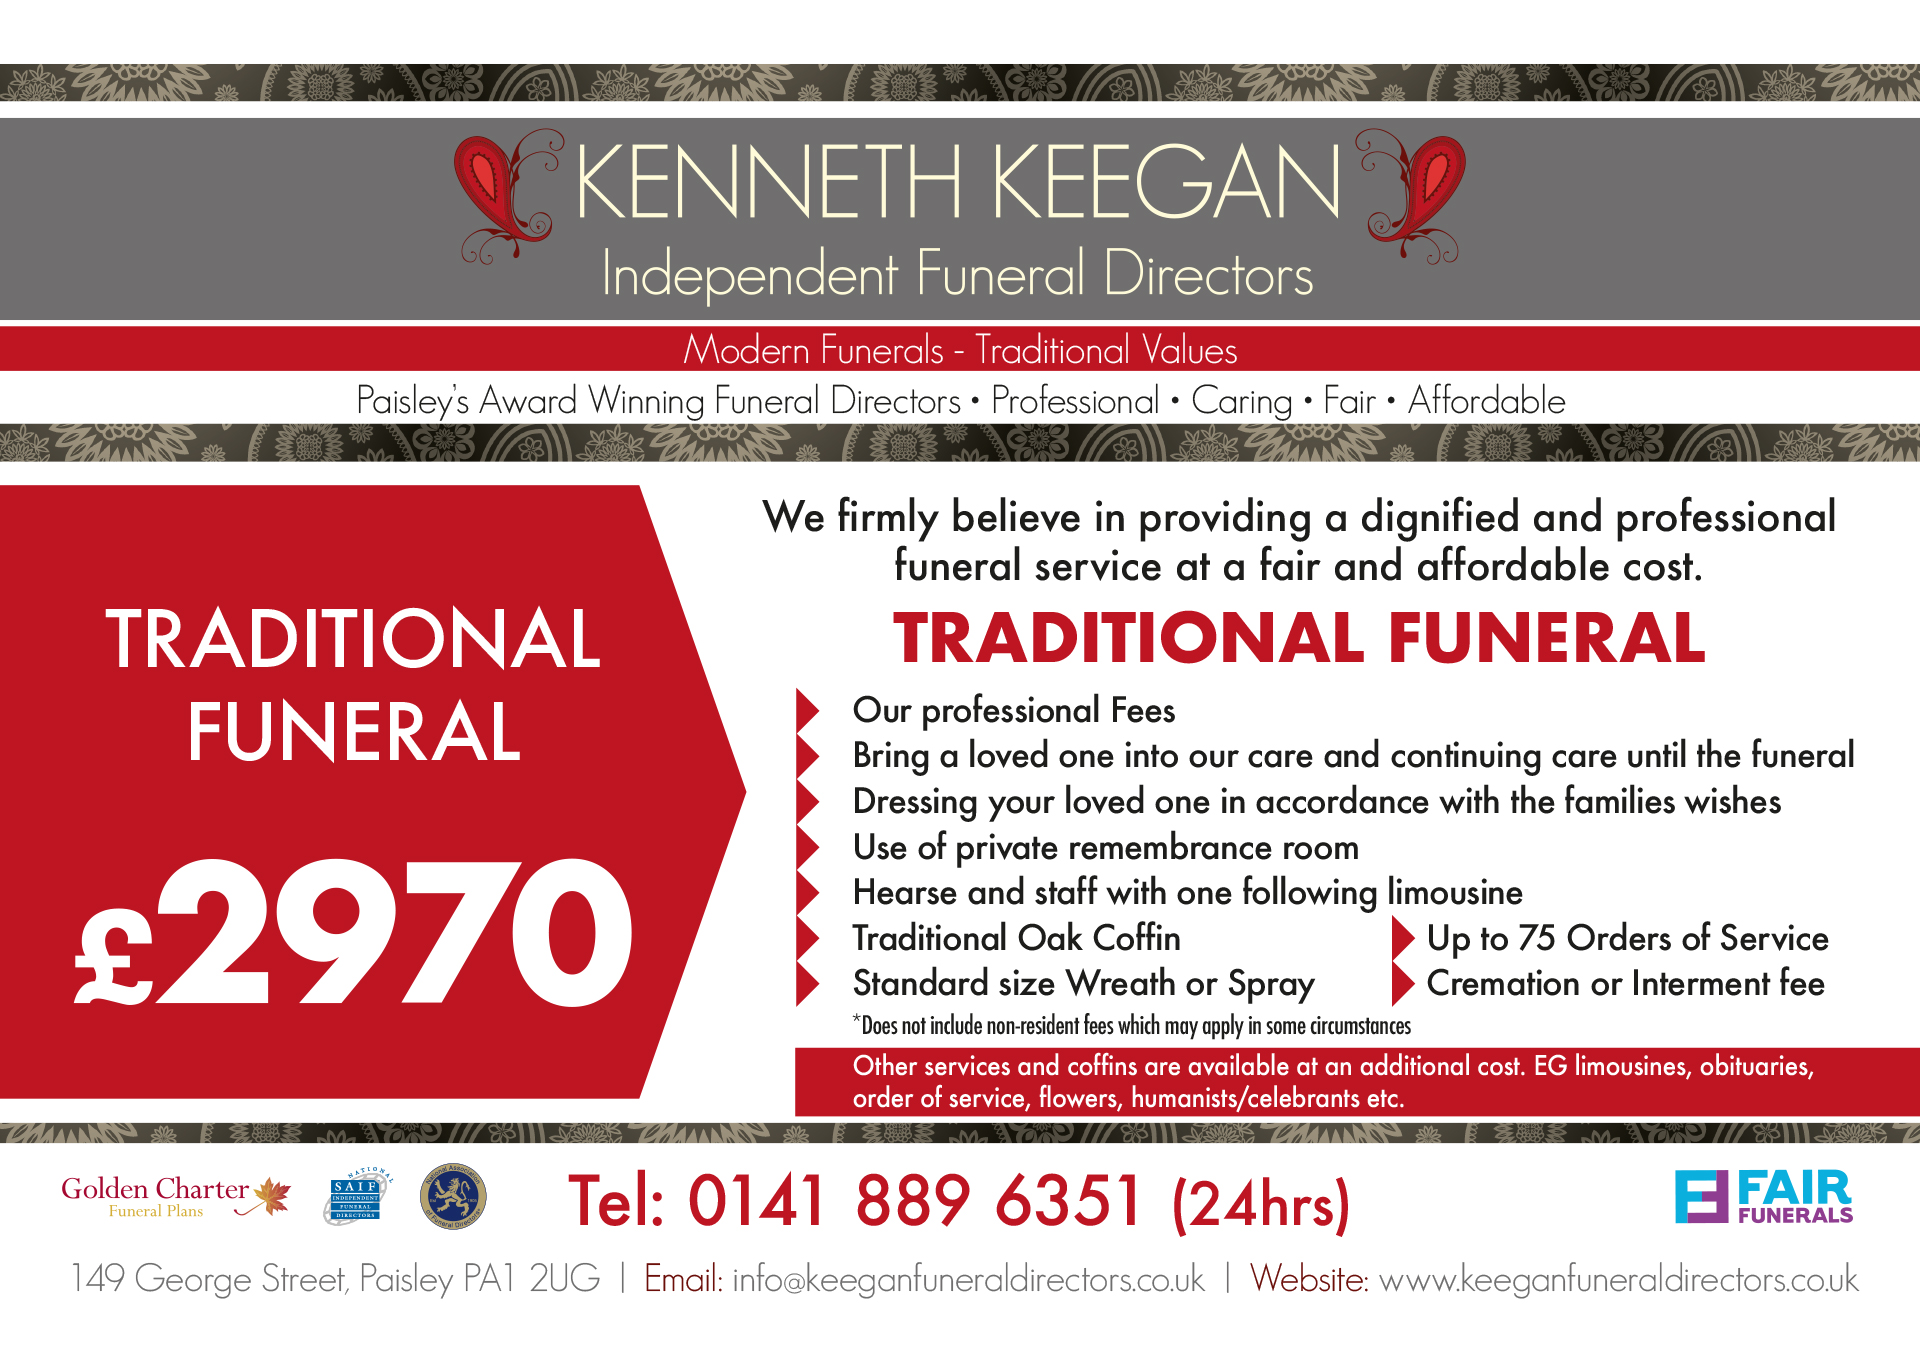 Kenneth-Keegan-Traditional-Funeral-A4L-18-12-18